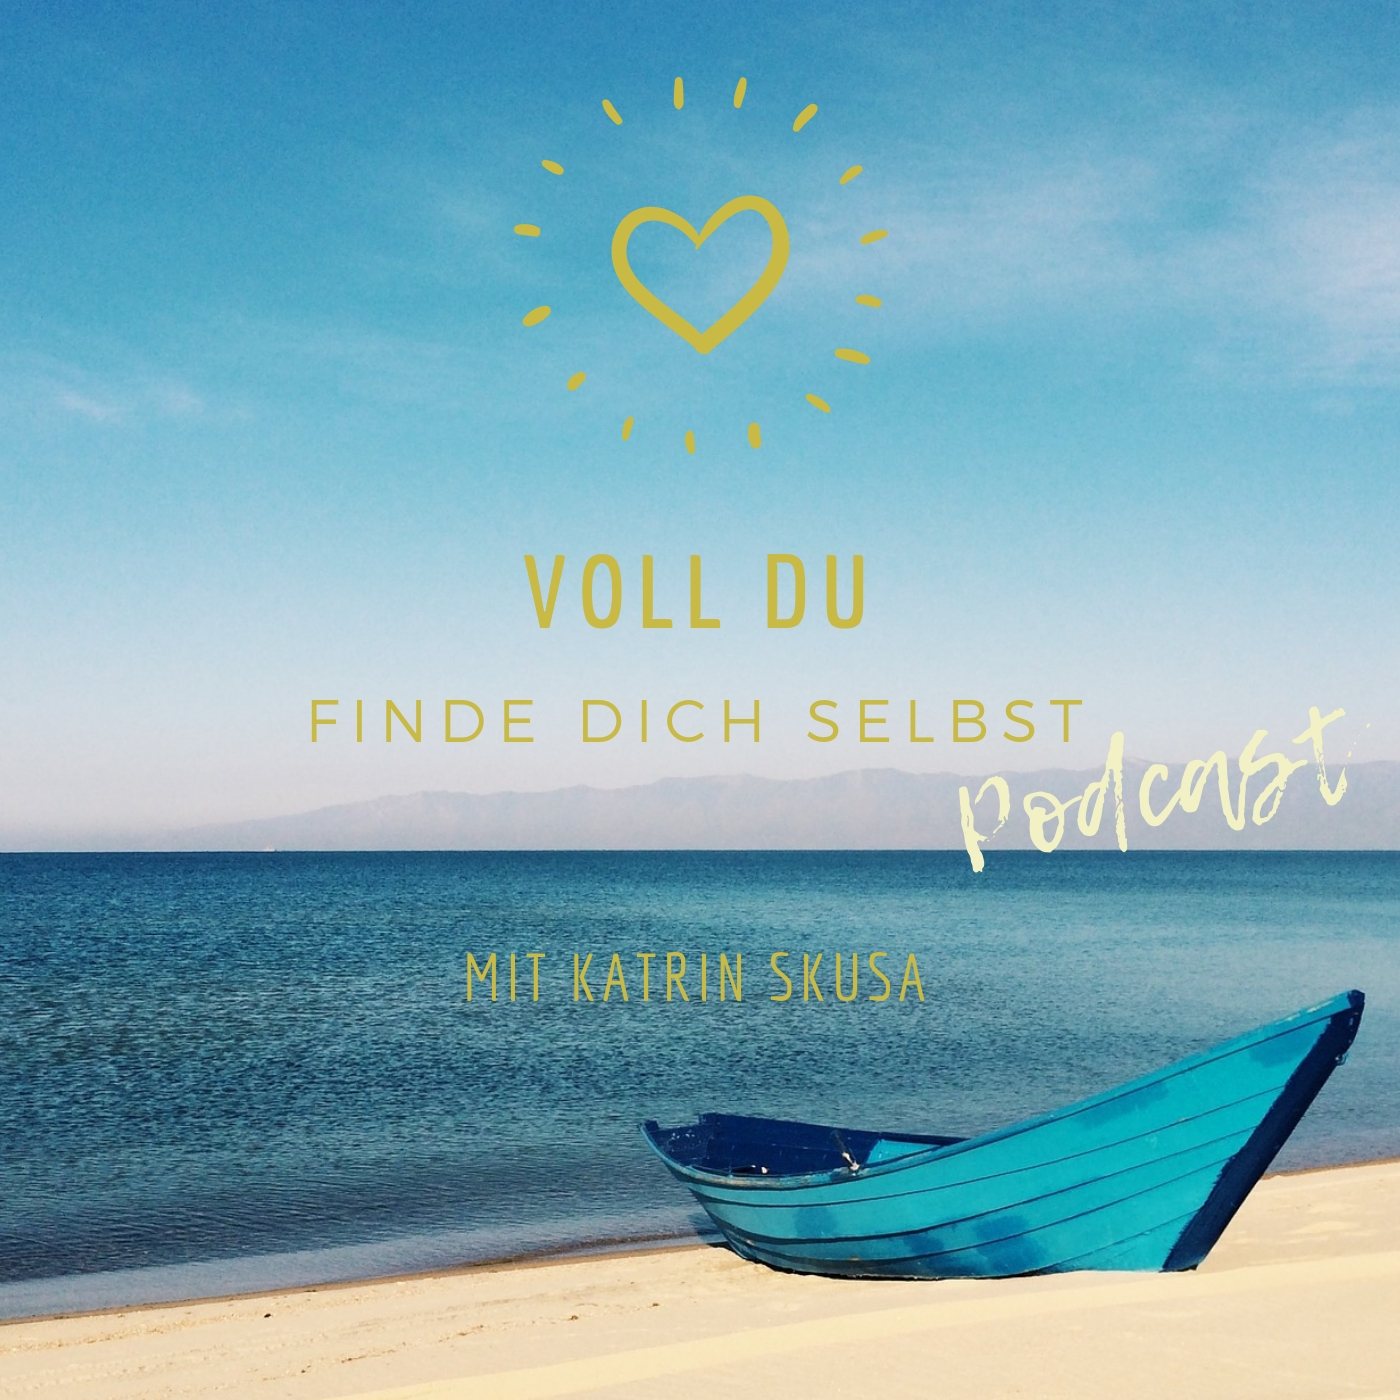 voll du - finde dich selbst - Podcast show art